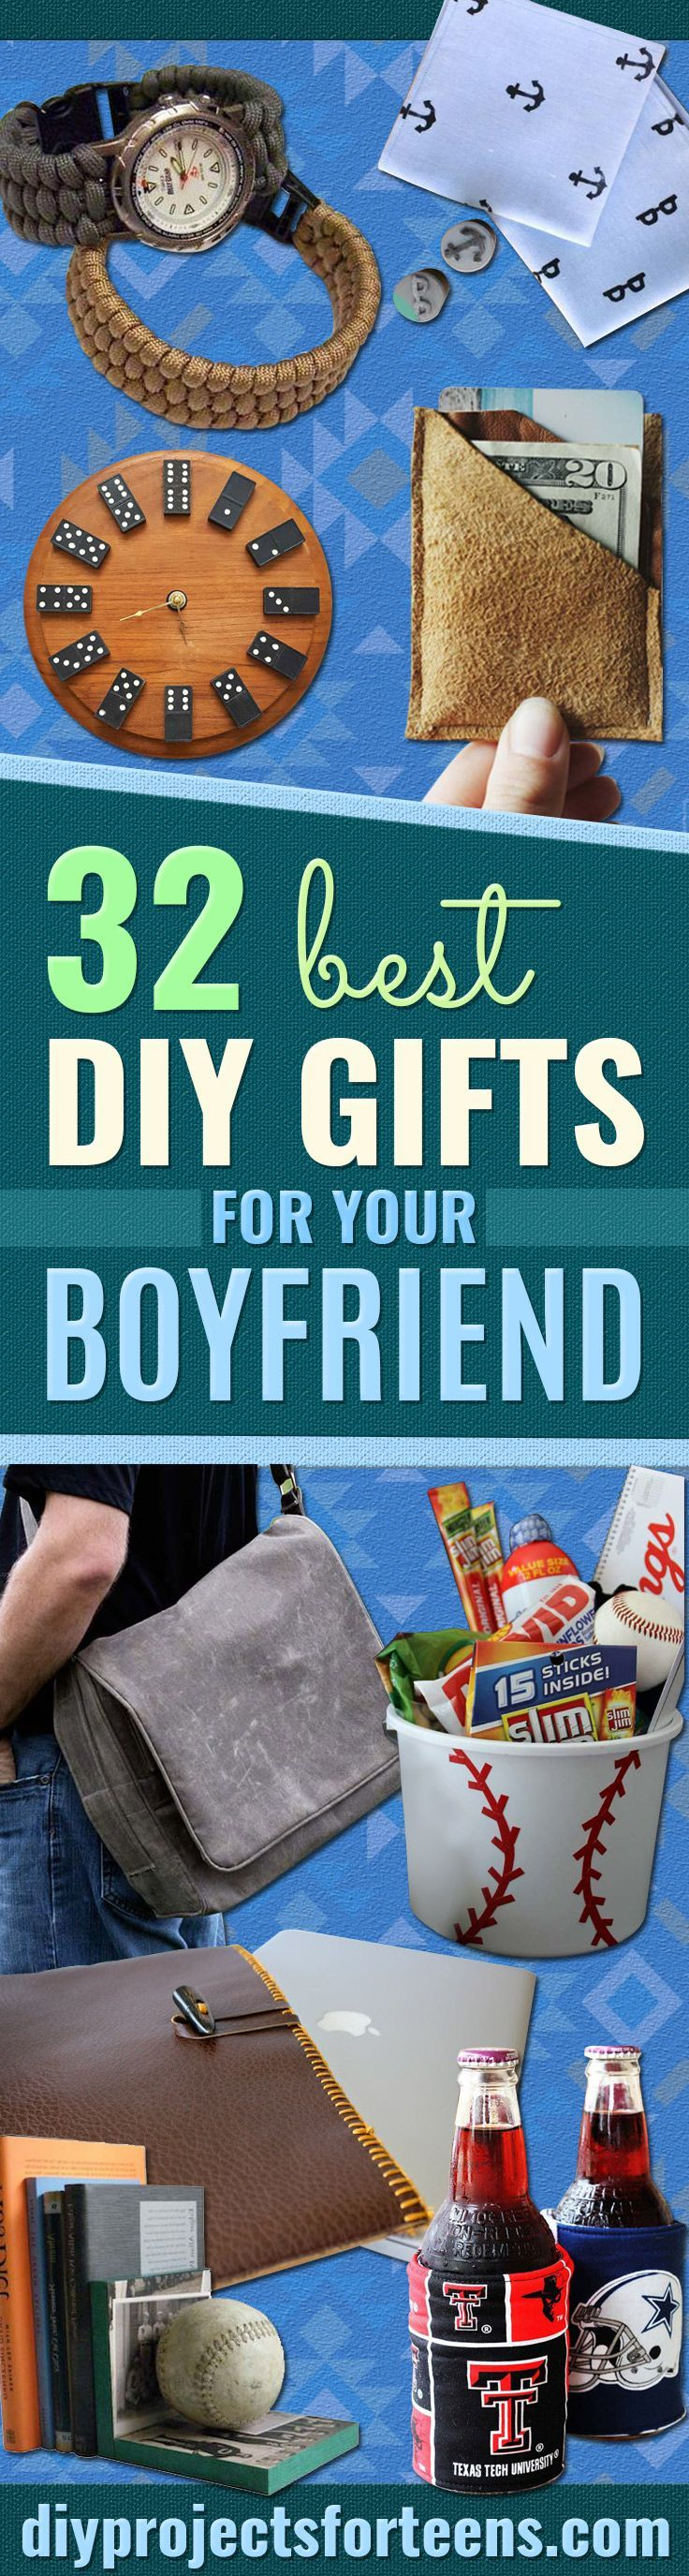 boyfriend gay for gifts your